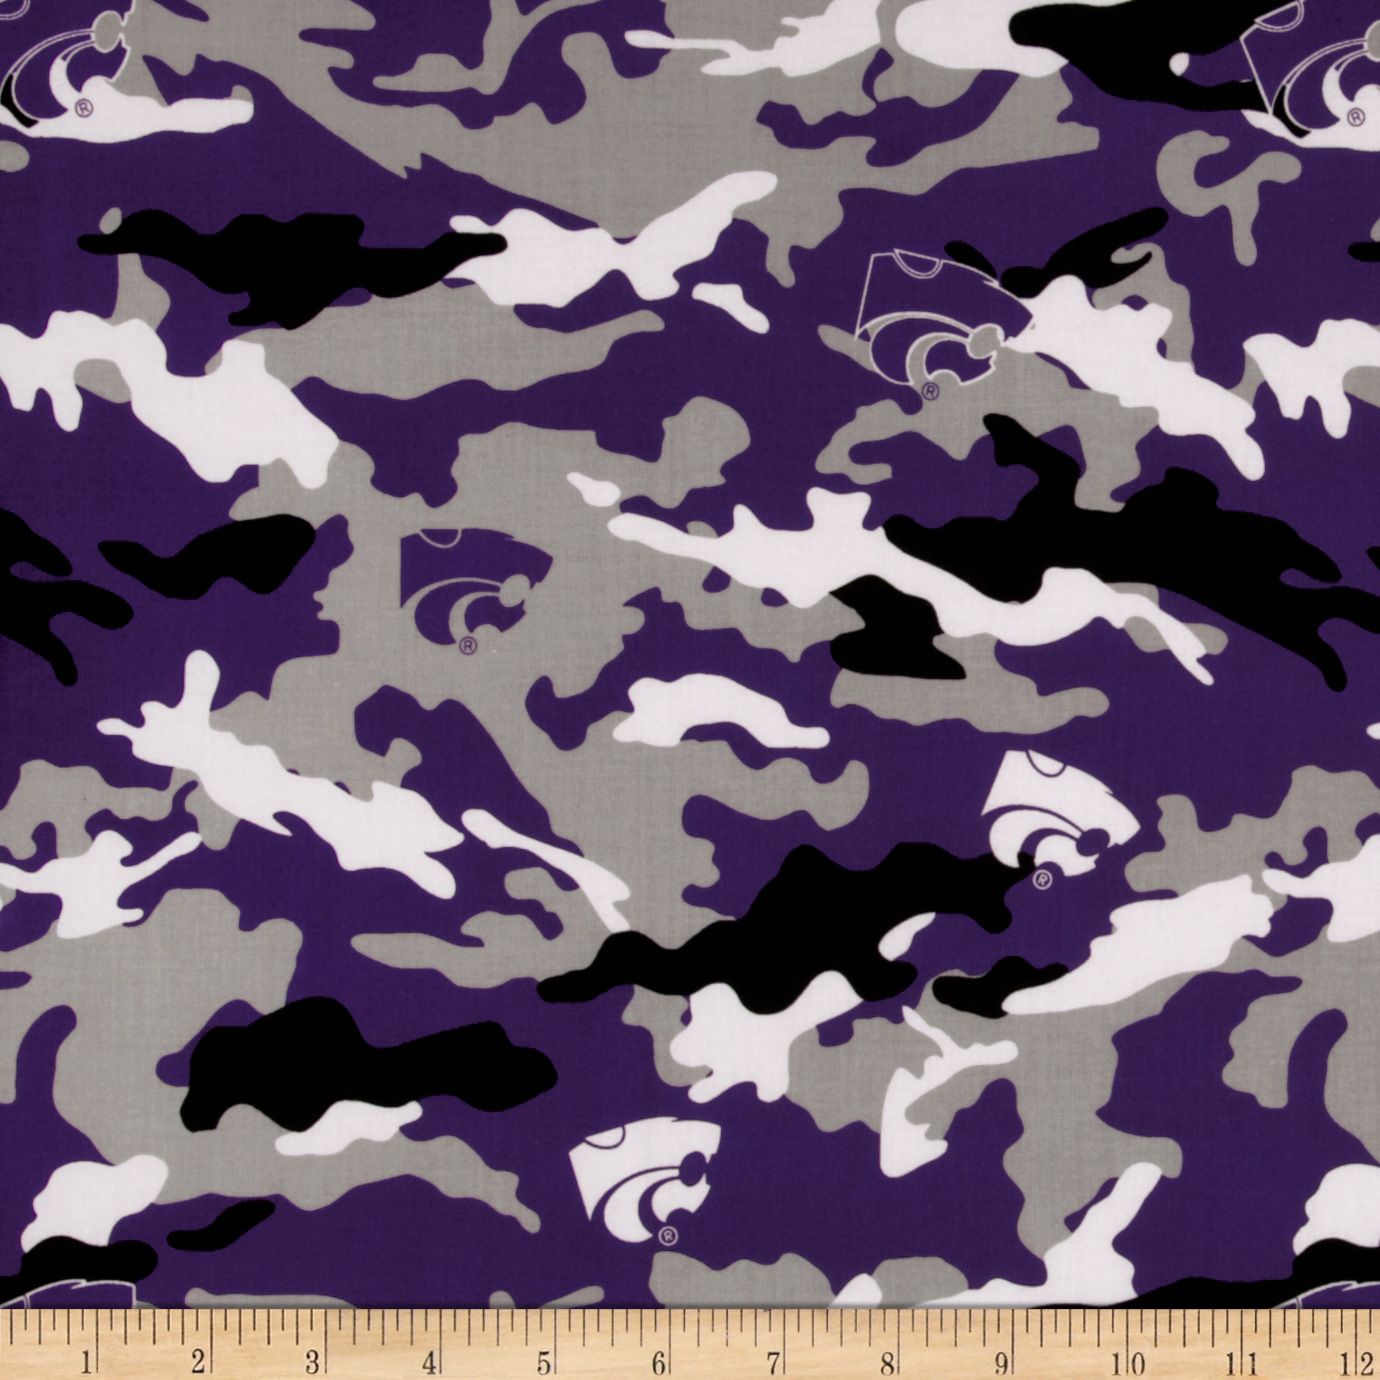 Collegiate Cotton Broadcloth Kansas State University Camouflage